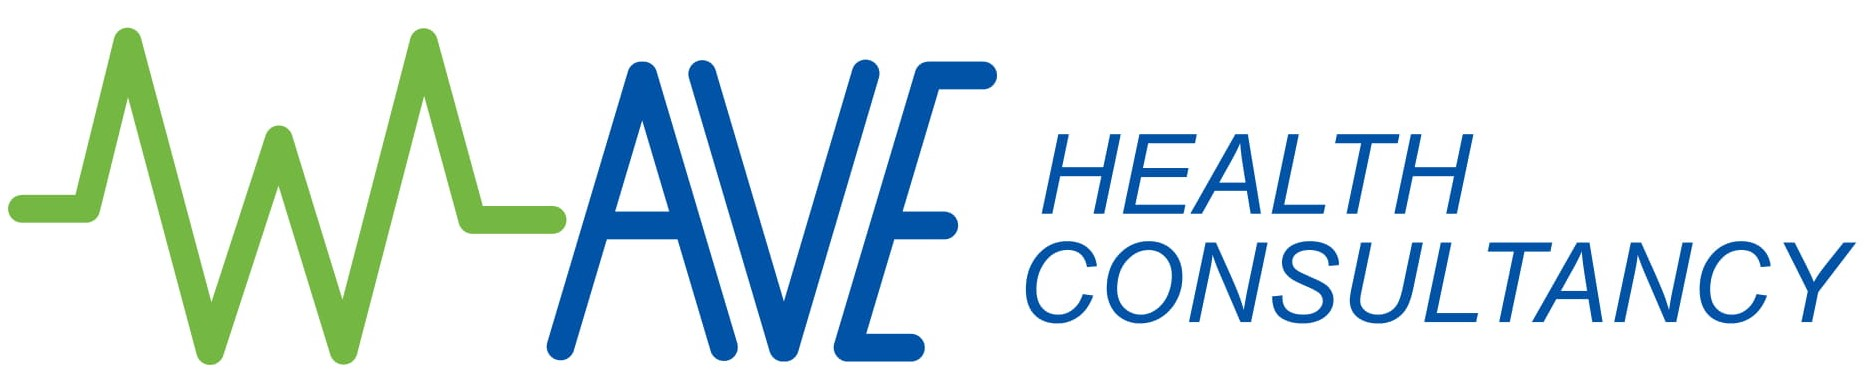 More about Wave Health Consultancy